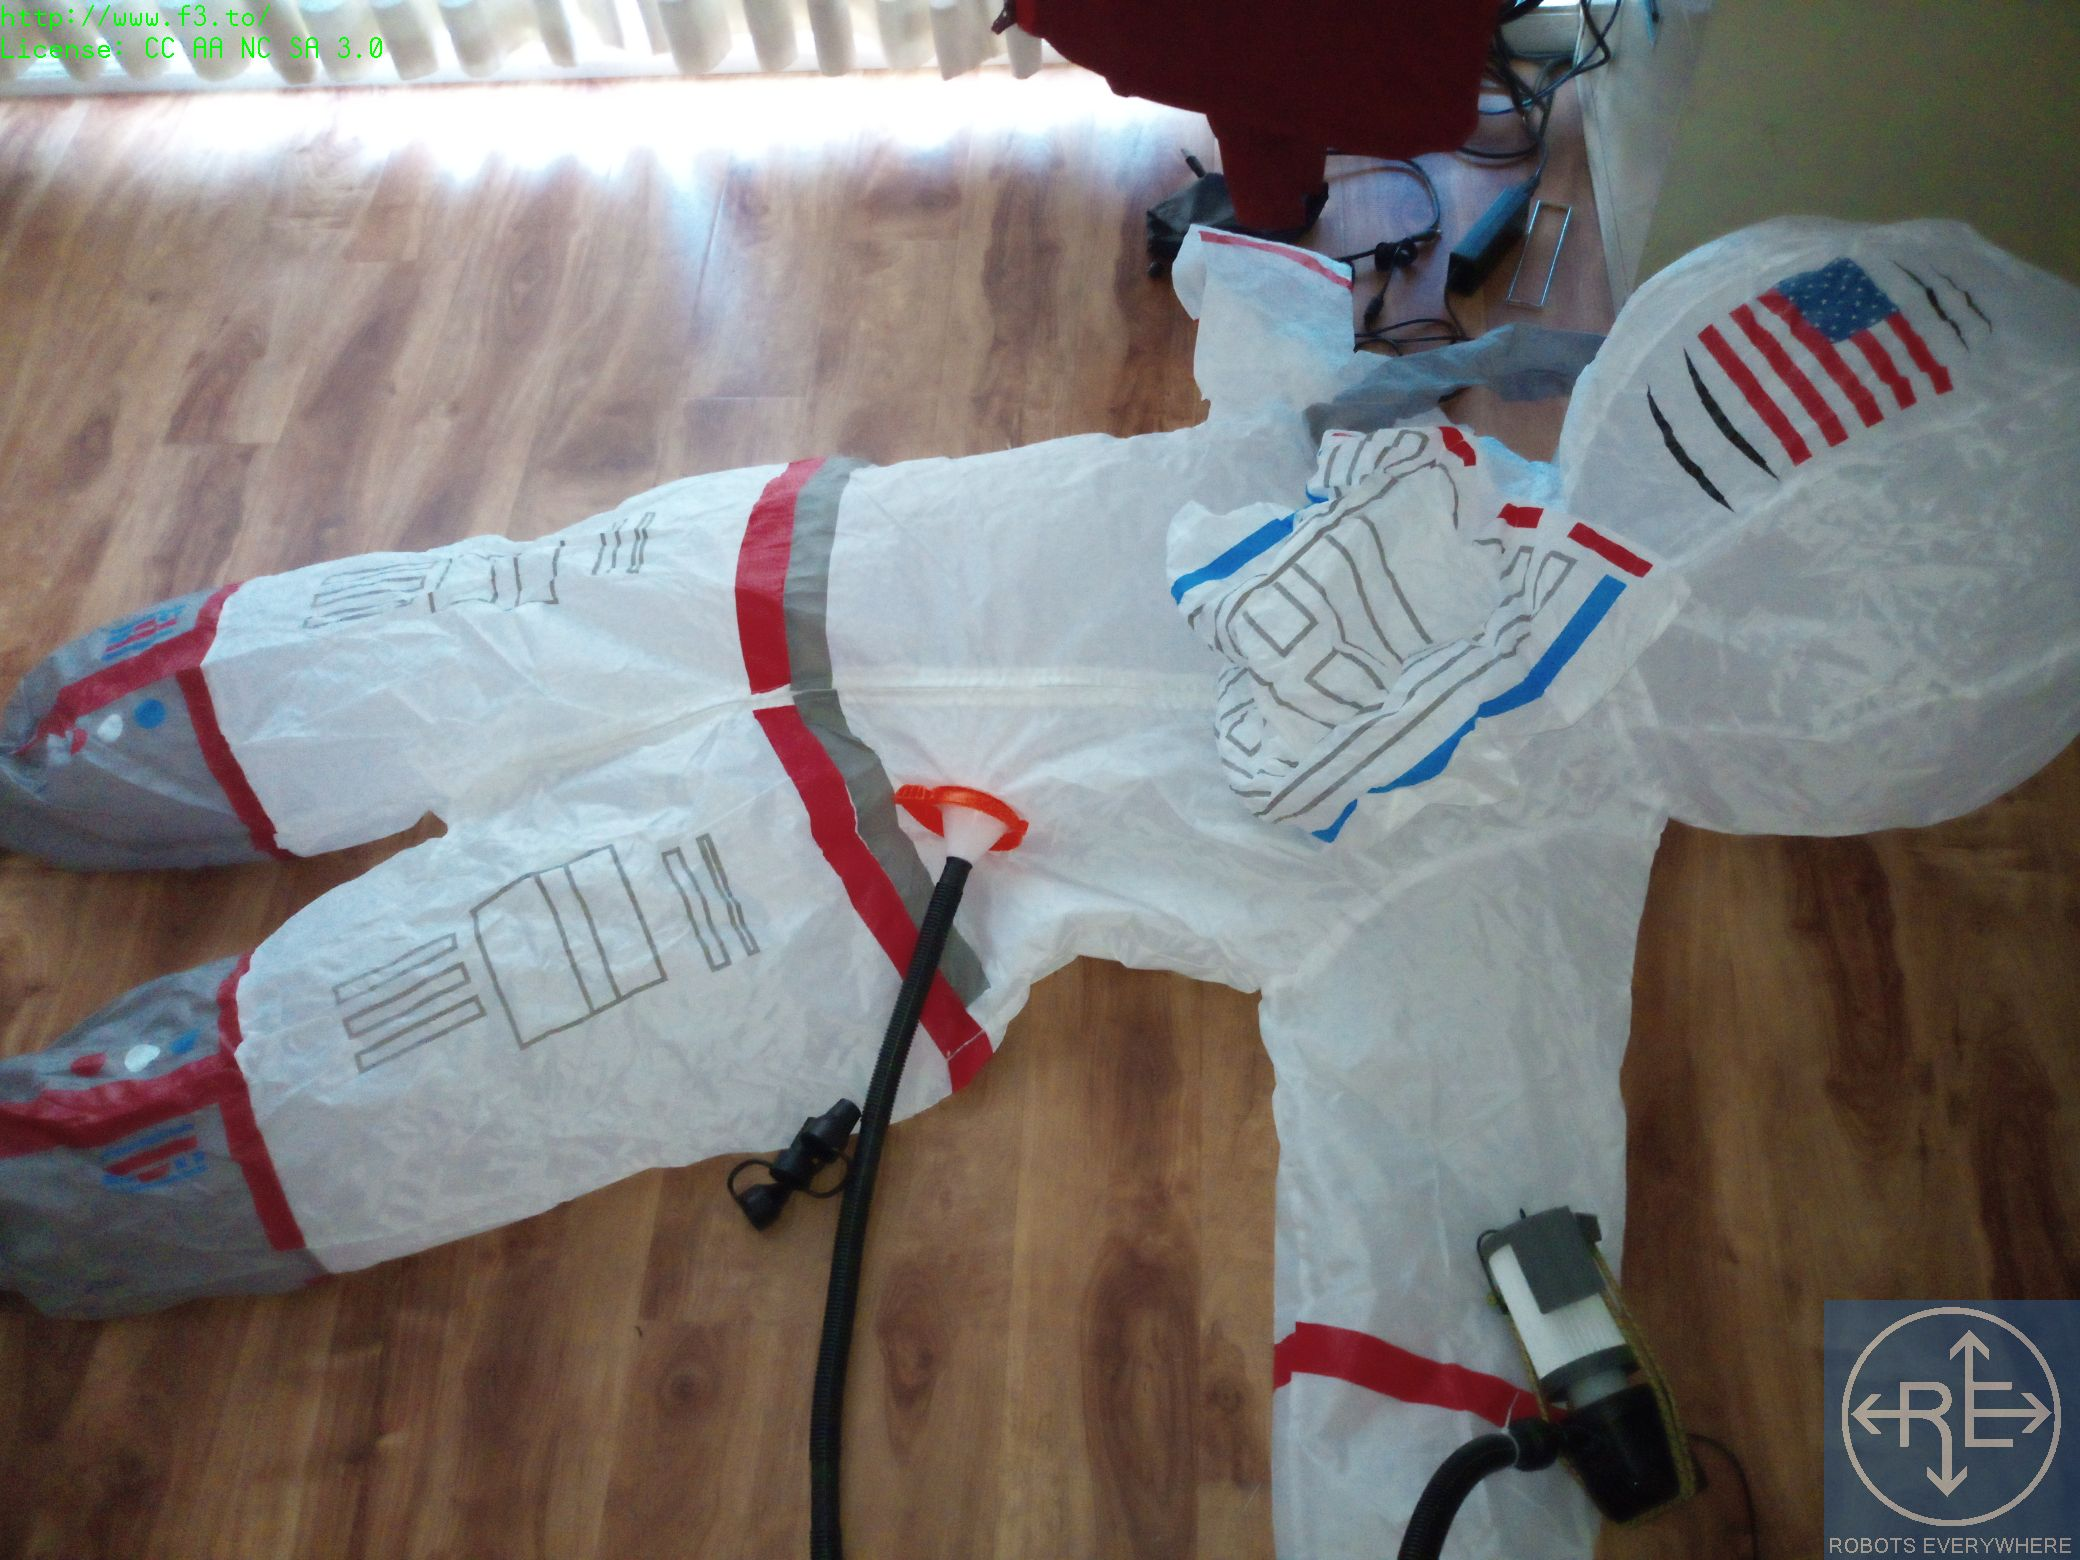 An inflatable astronaut costume converted into a PAPR suit for respiratory protection